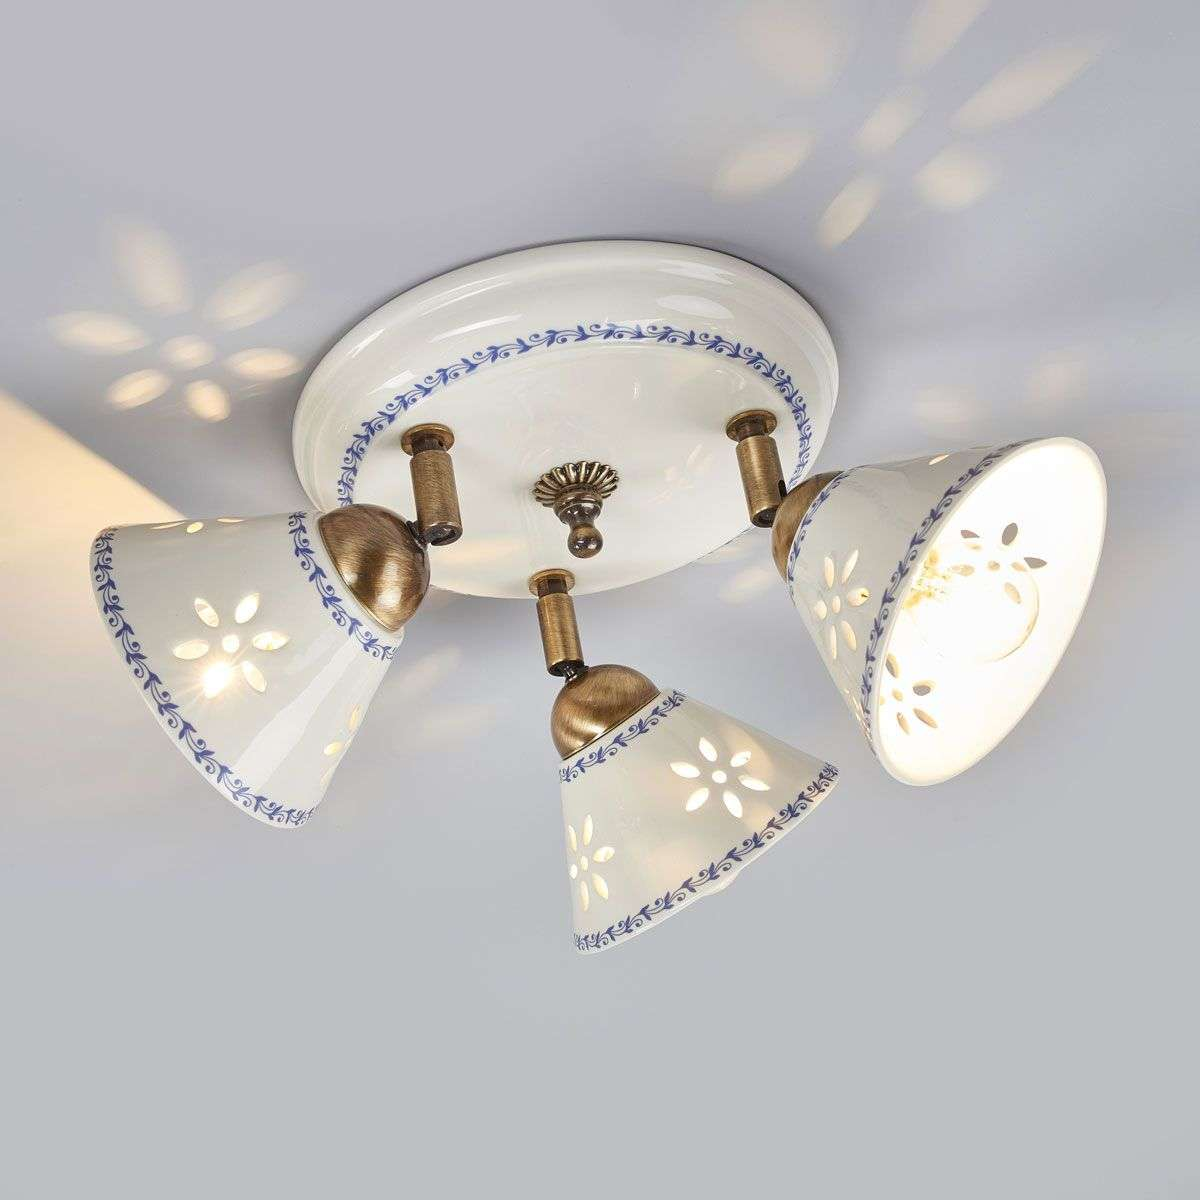 Nonna ceiling light made of white ceramic 3 bulb lights nonna ceiling light made of white ceramic 3 bulb aloadofball Image collections